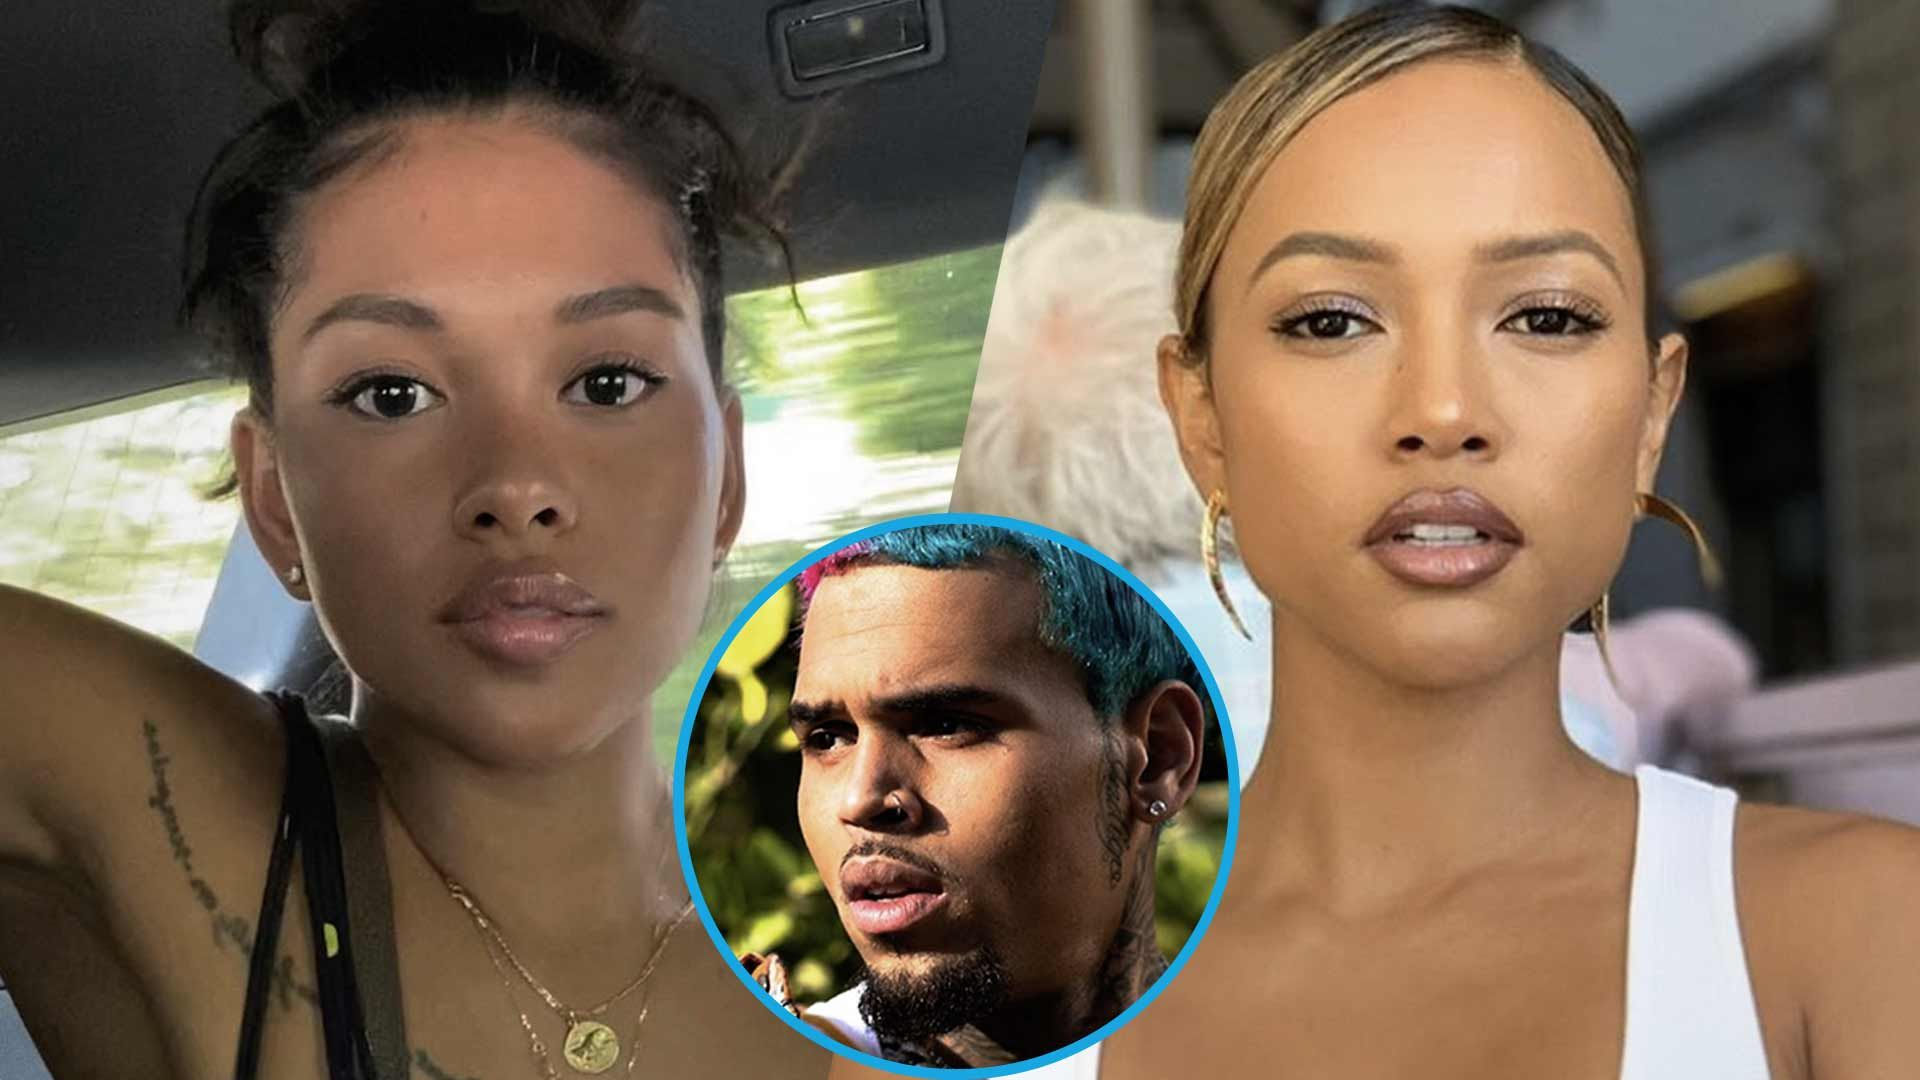 Chris Brown's Baby Mama, Ammika Harris Is Effortlessly Stunning In These Photos – Some Haters Accuse Her Of Copying Karrueche